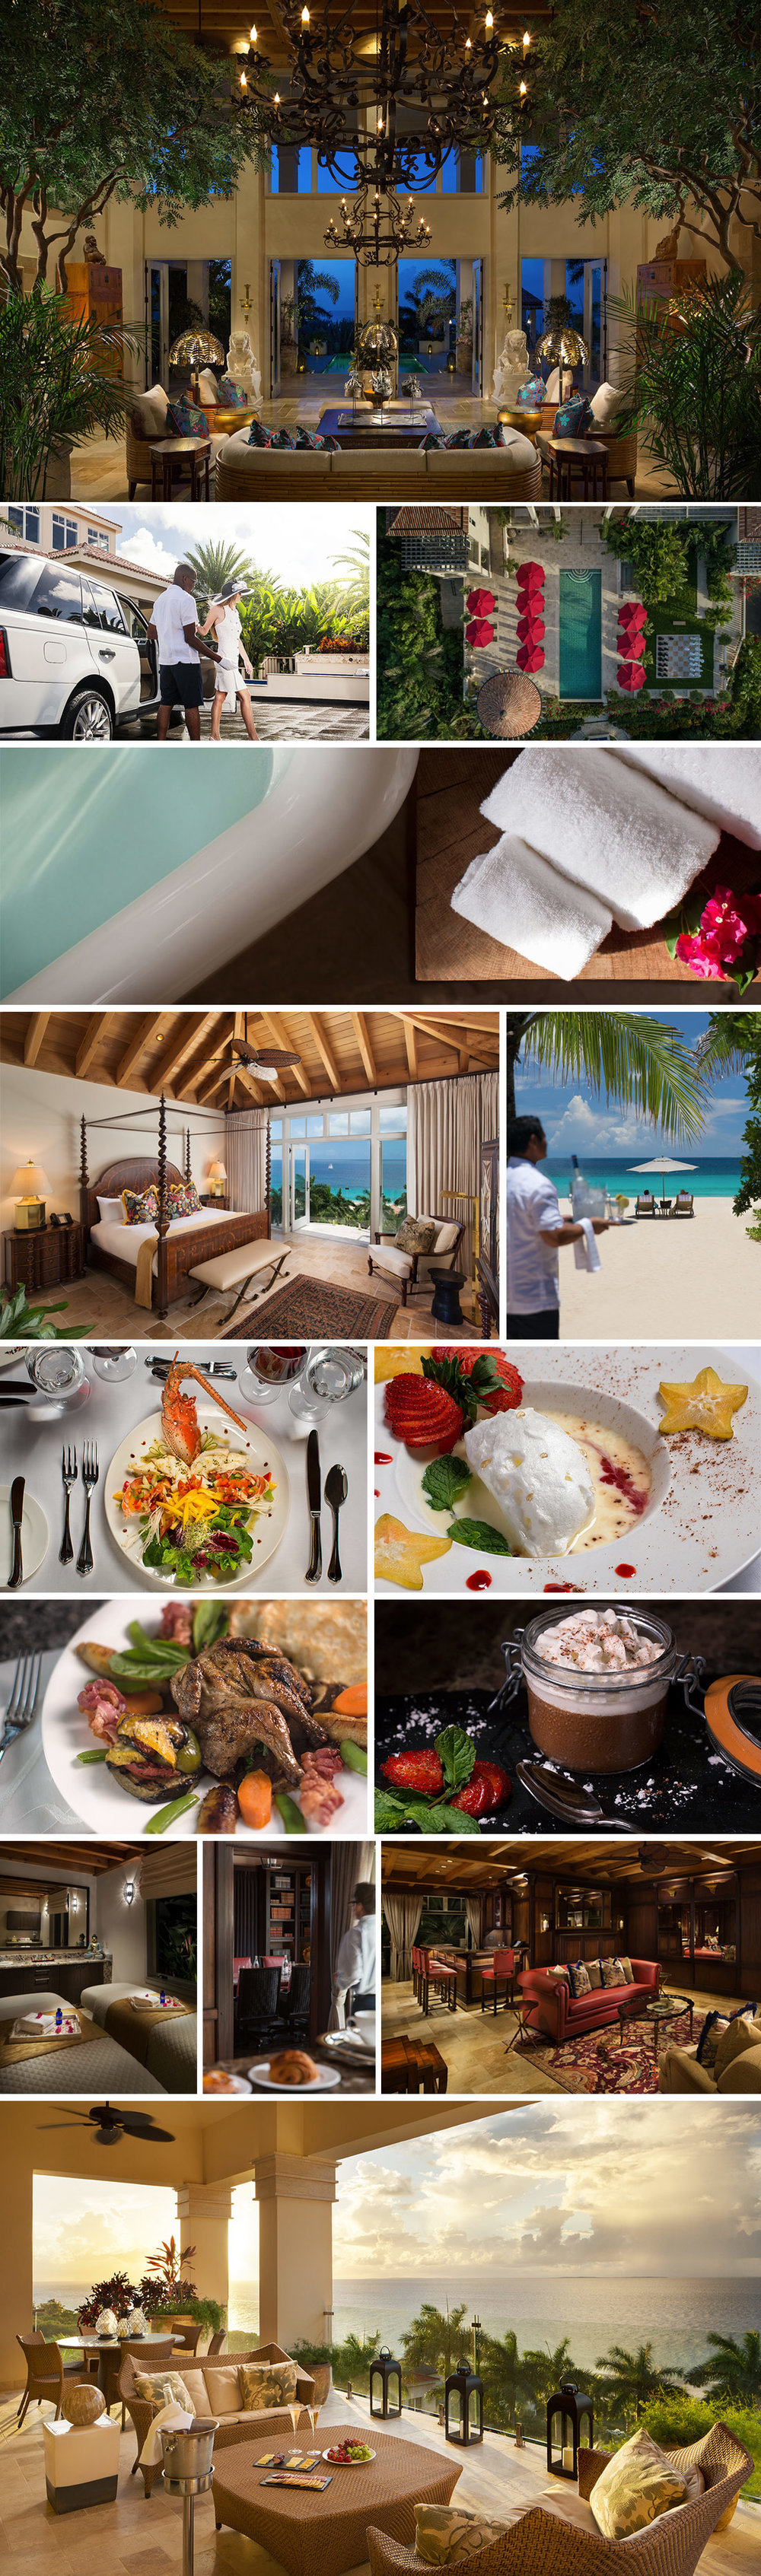 Luxury Hotel and Resort Photography by Joe Jenkin Productions.